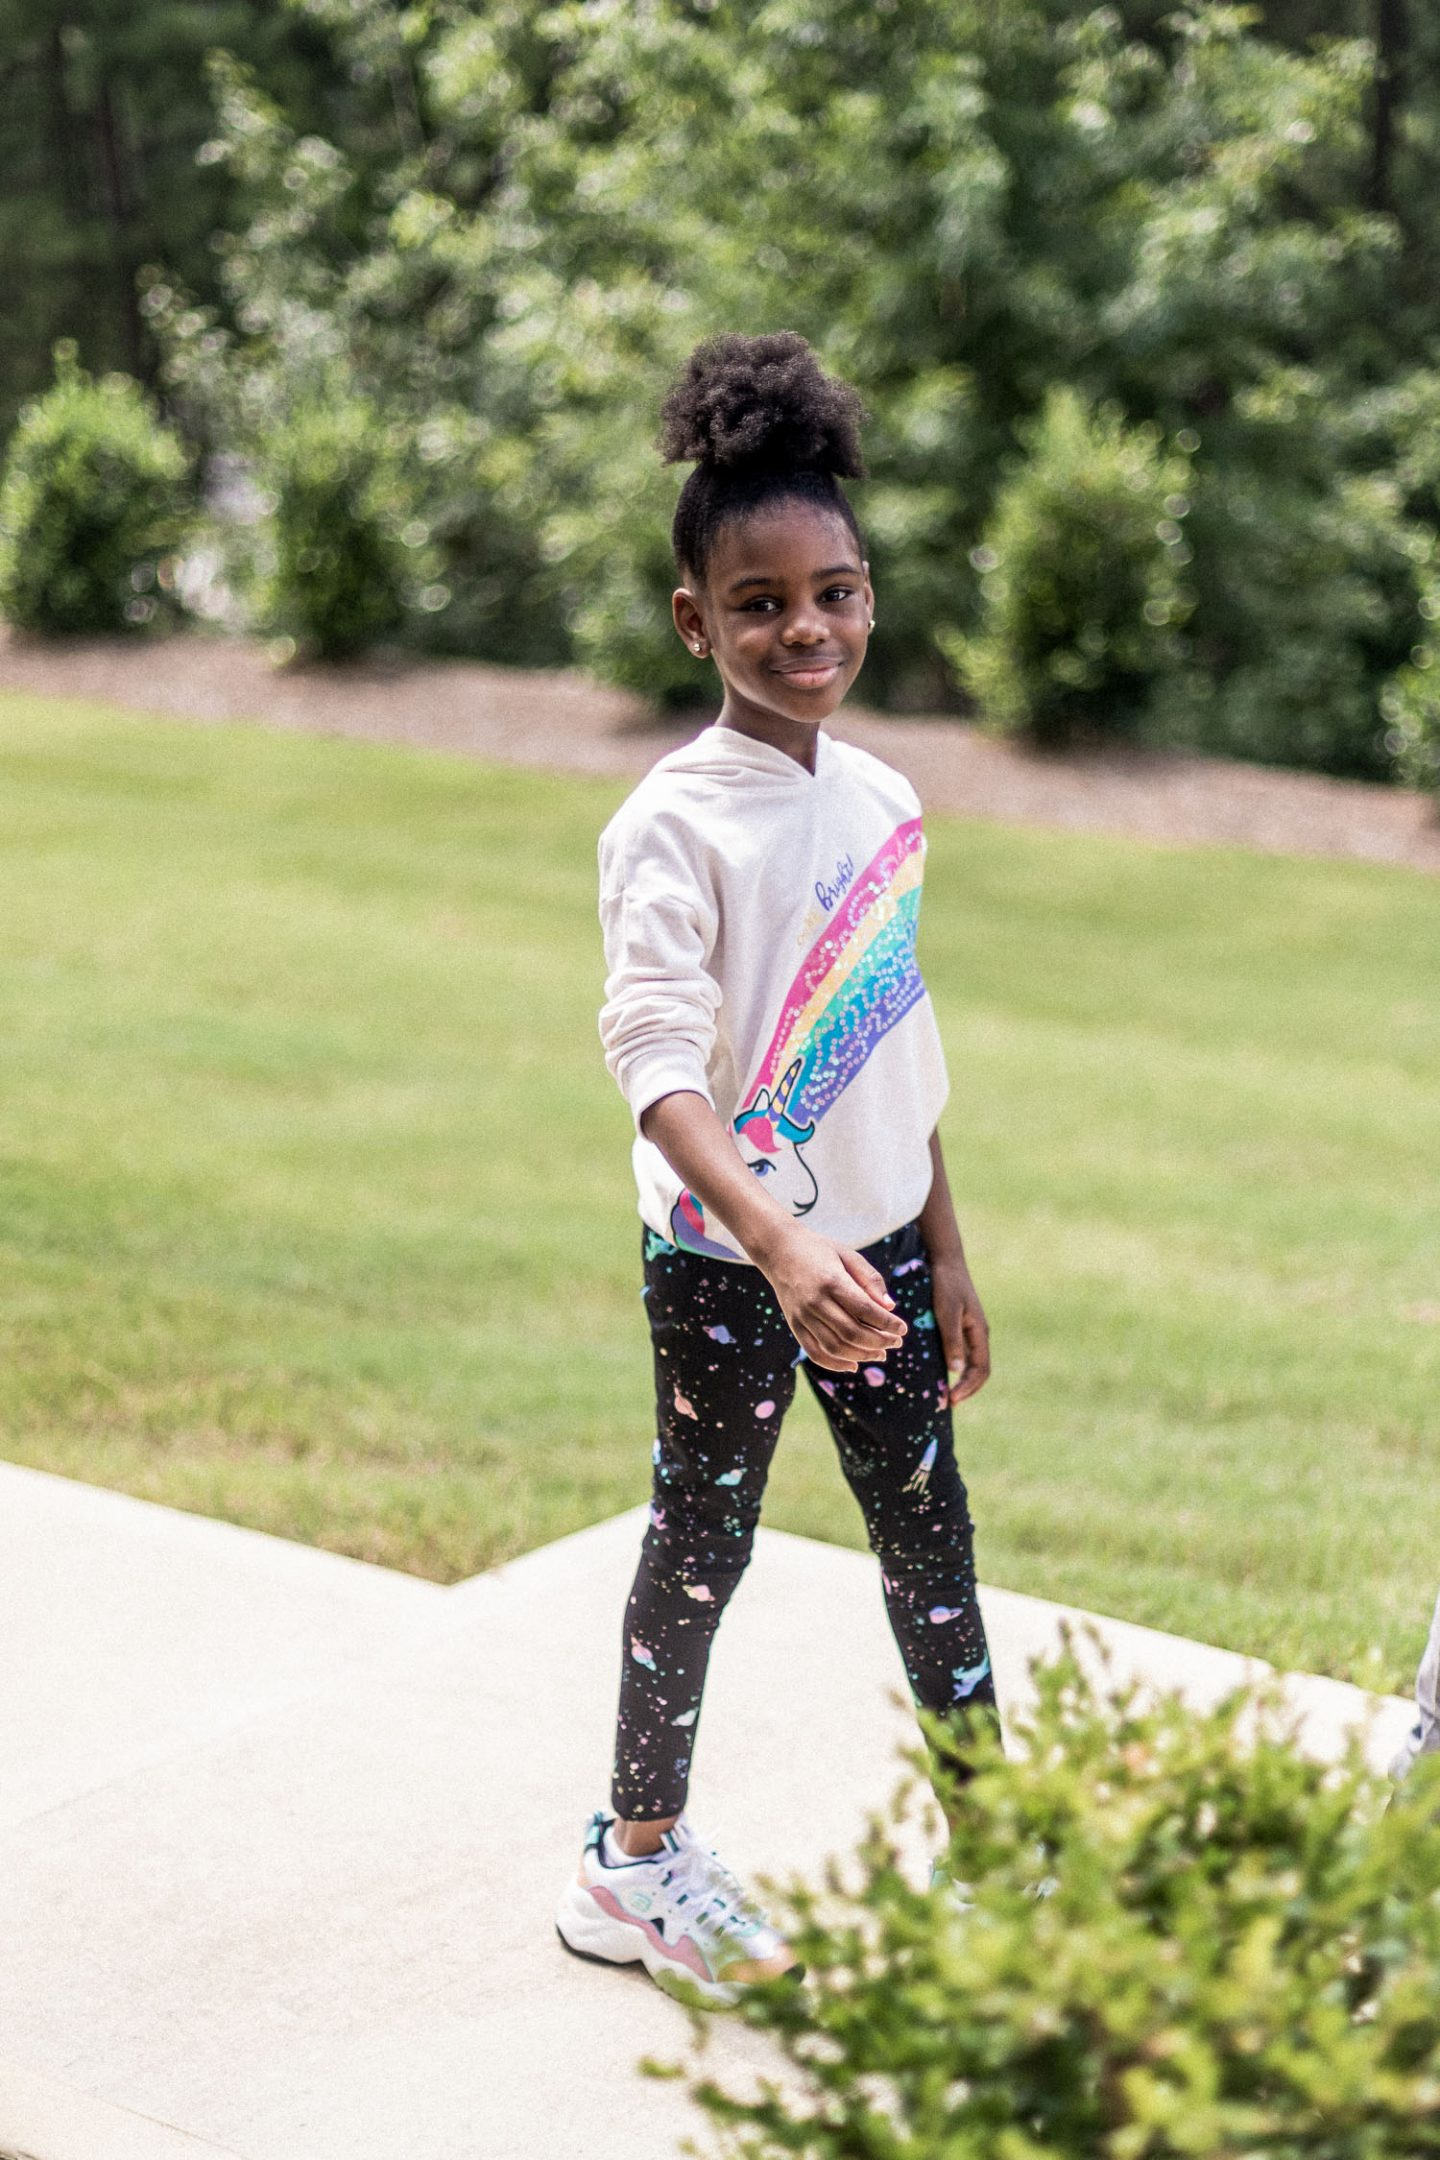 atlanta blogger kids are back to school ready in fashion from walmart, back to school style, what kids want to wear to school